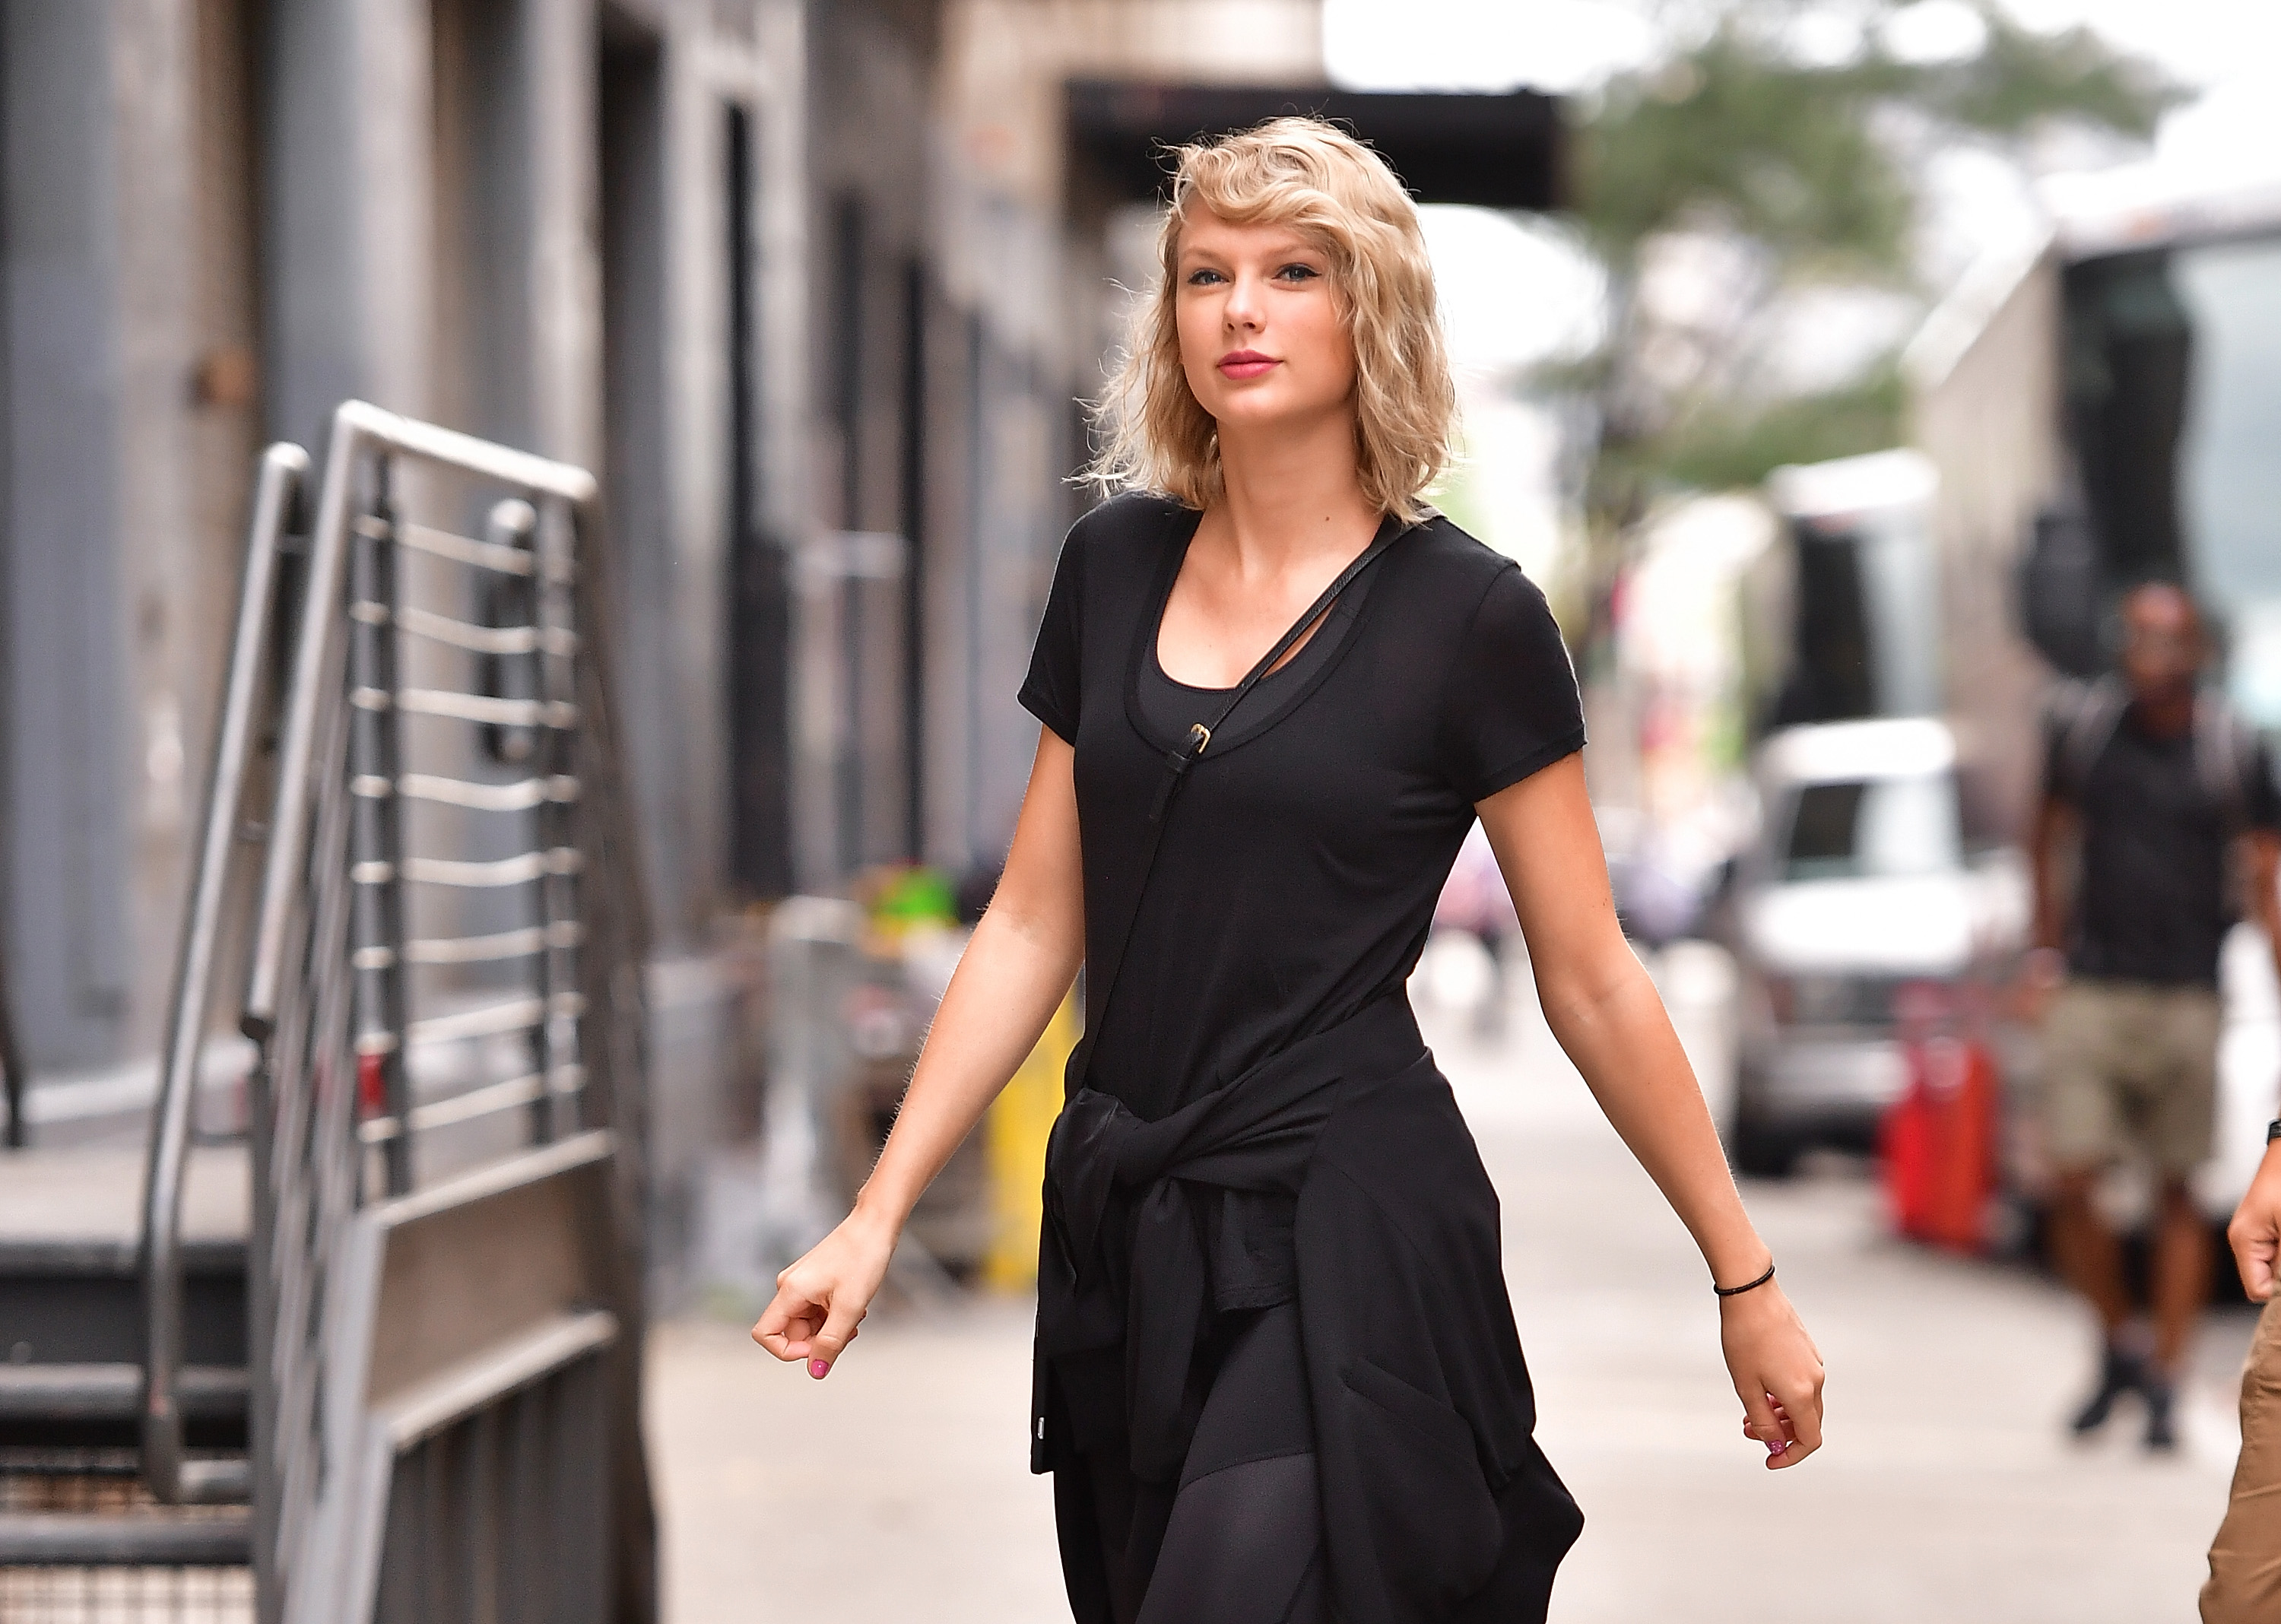 NEW YORK, NY - SEPTEMBER 07:  Taylor Swift seen on the streets of Manhattan on September 7, 2016 in New York City.  (Photo by James Devaney/GC Images)